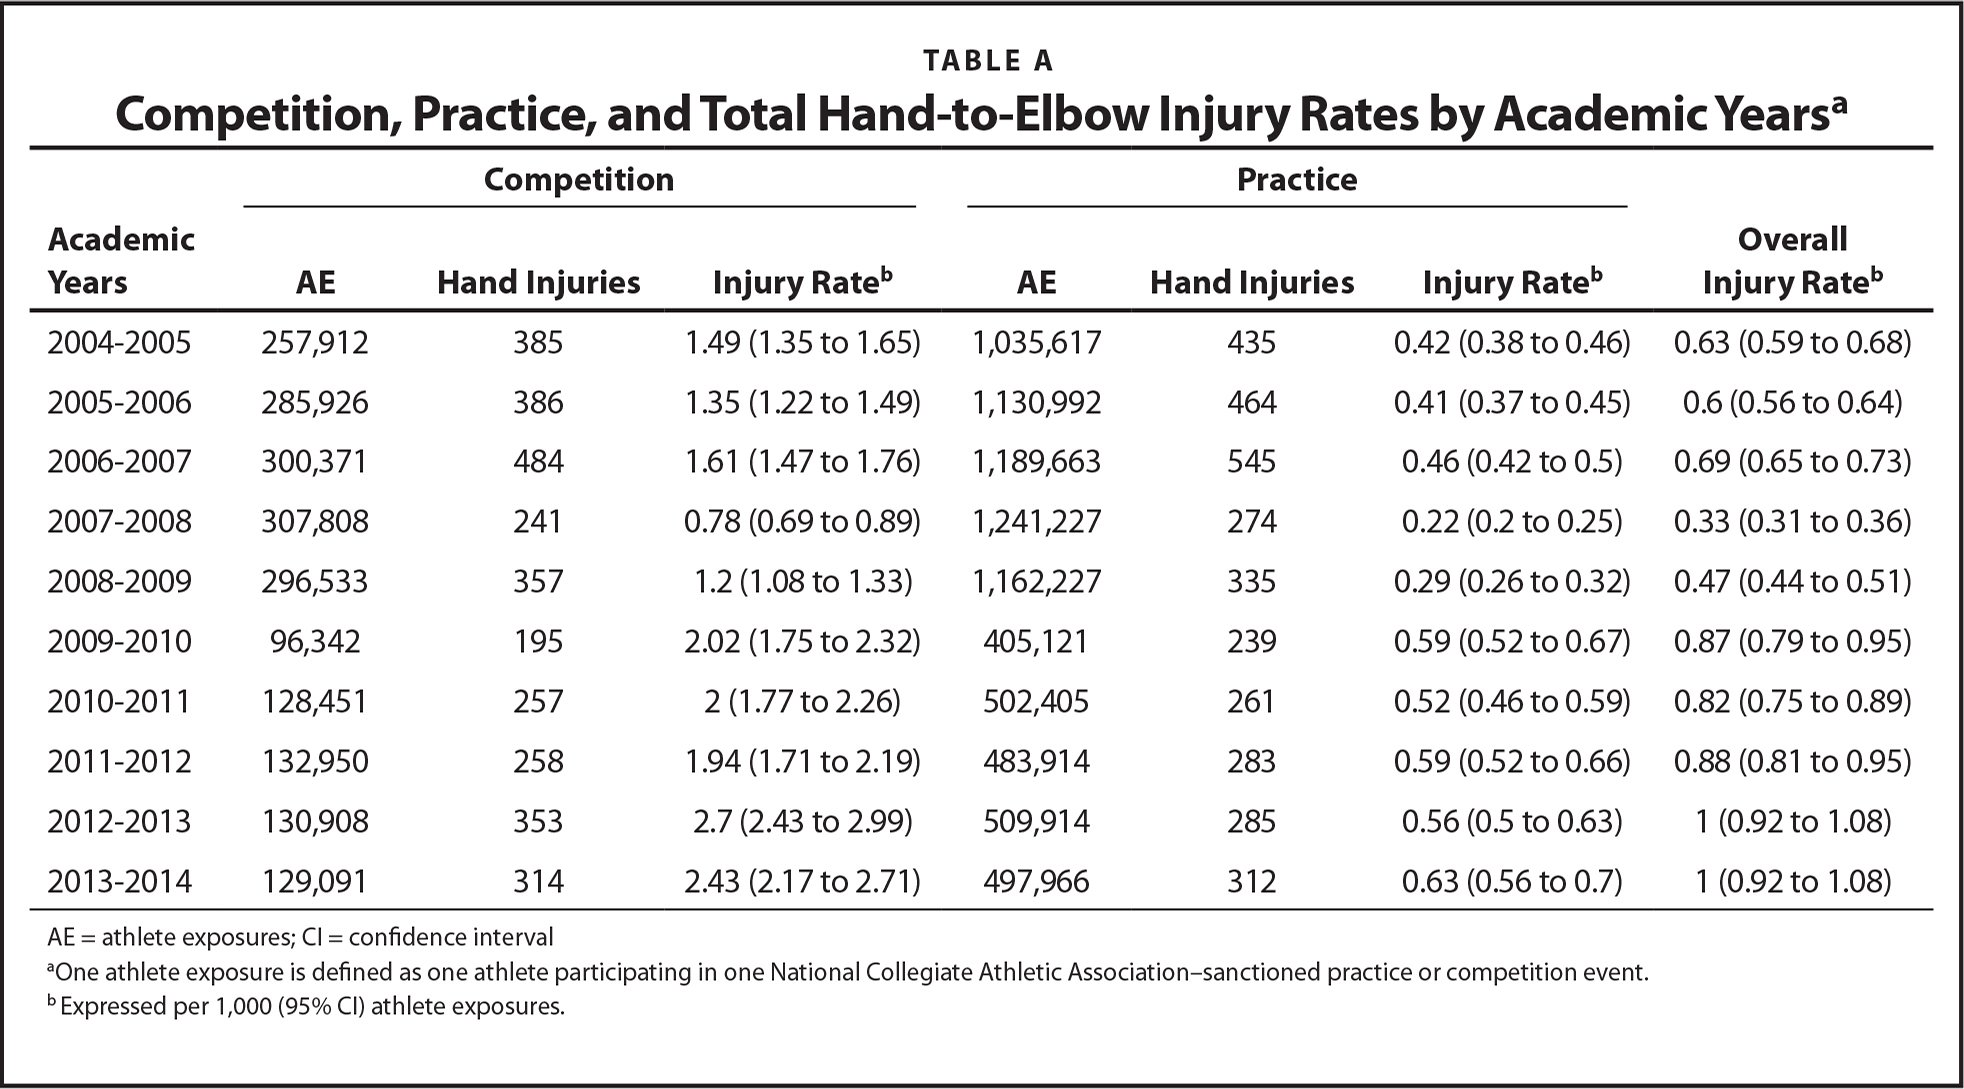 Competition, Practice, and Total Hand-to-Elbow Injury Rates by Academic Yearsa